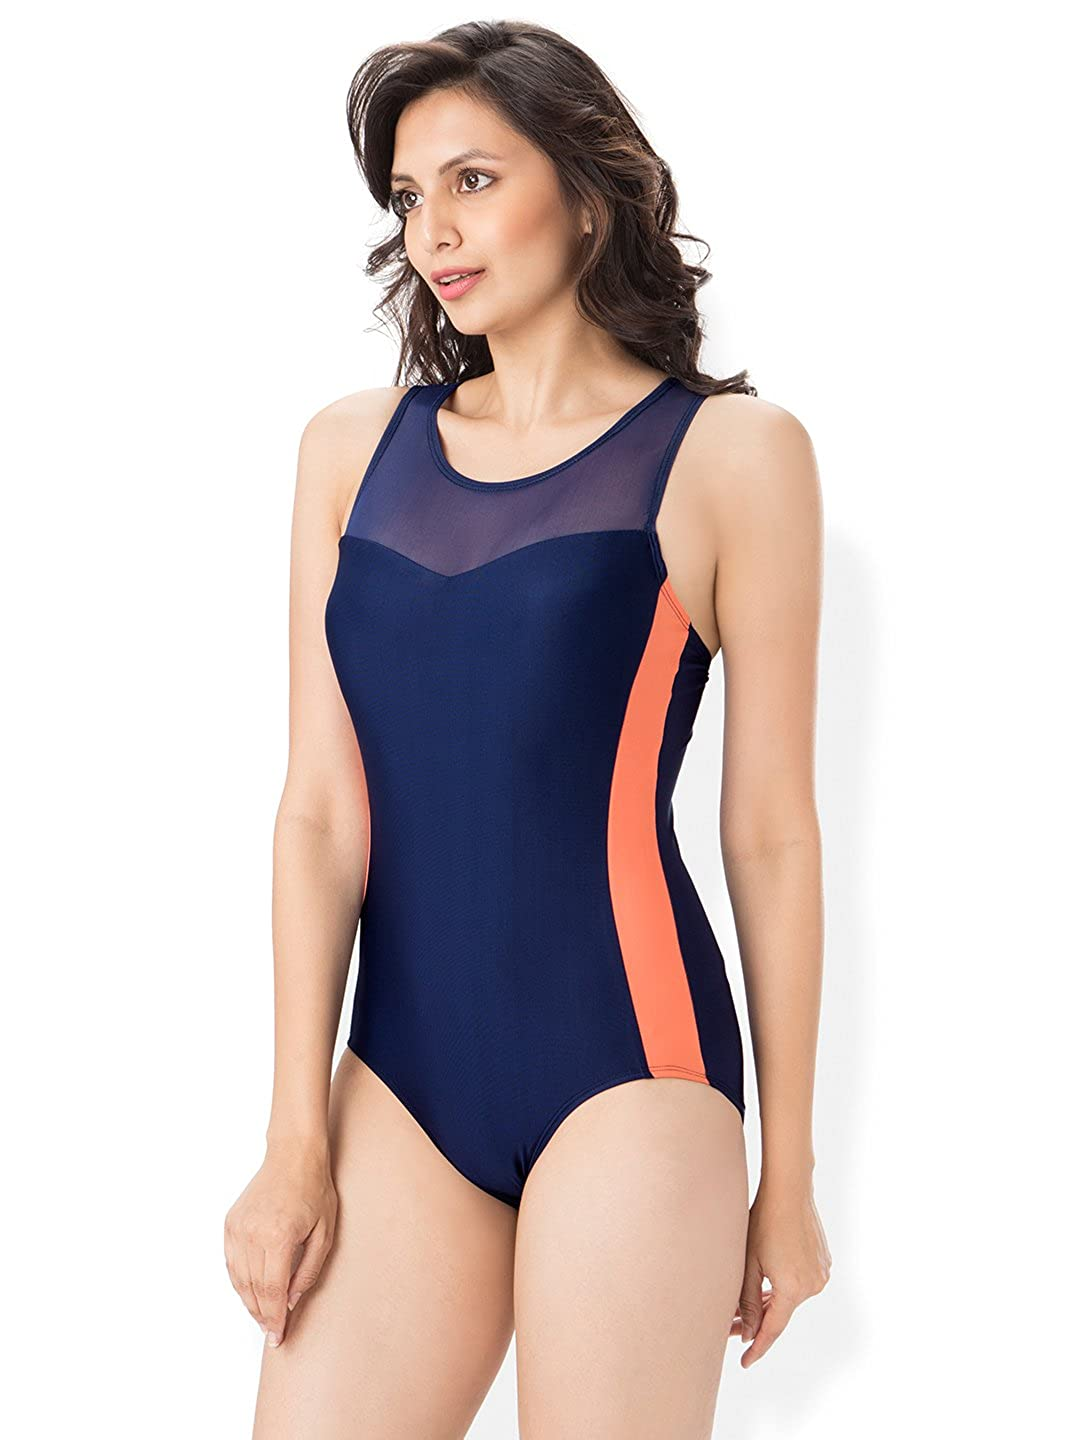 5bed68792f588 PrettySecrets Mesh Cut Out Swimsuit: Amazon.in: Clothing & Accessories